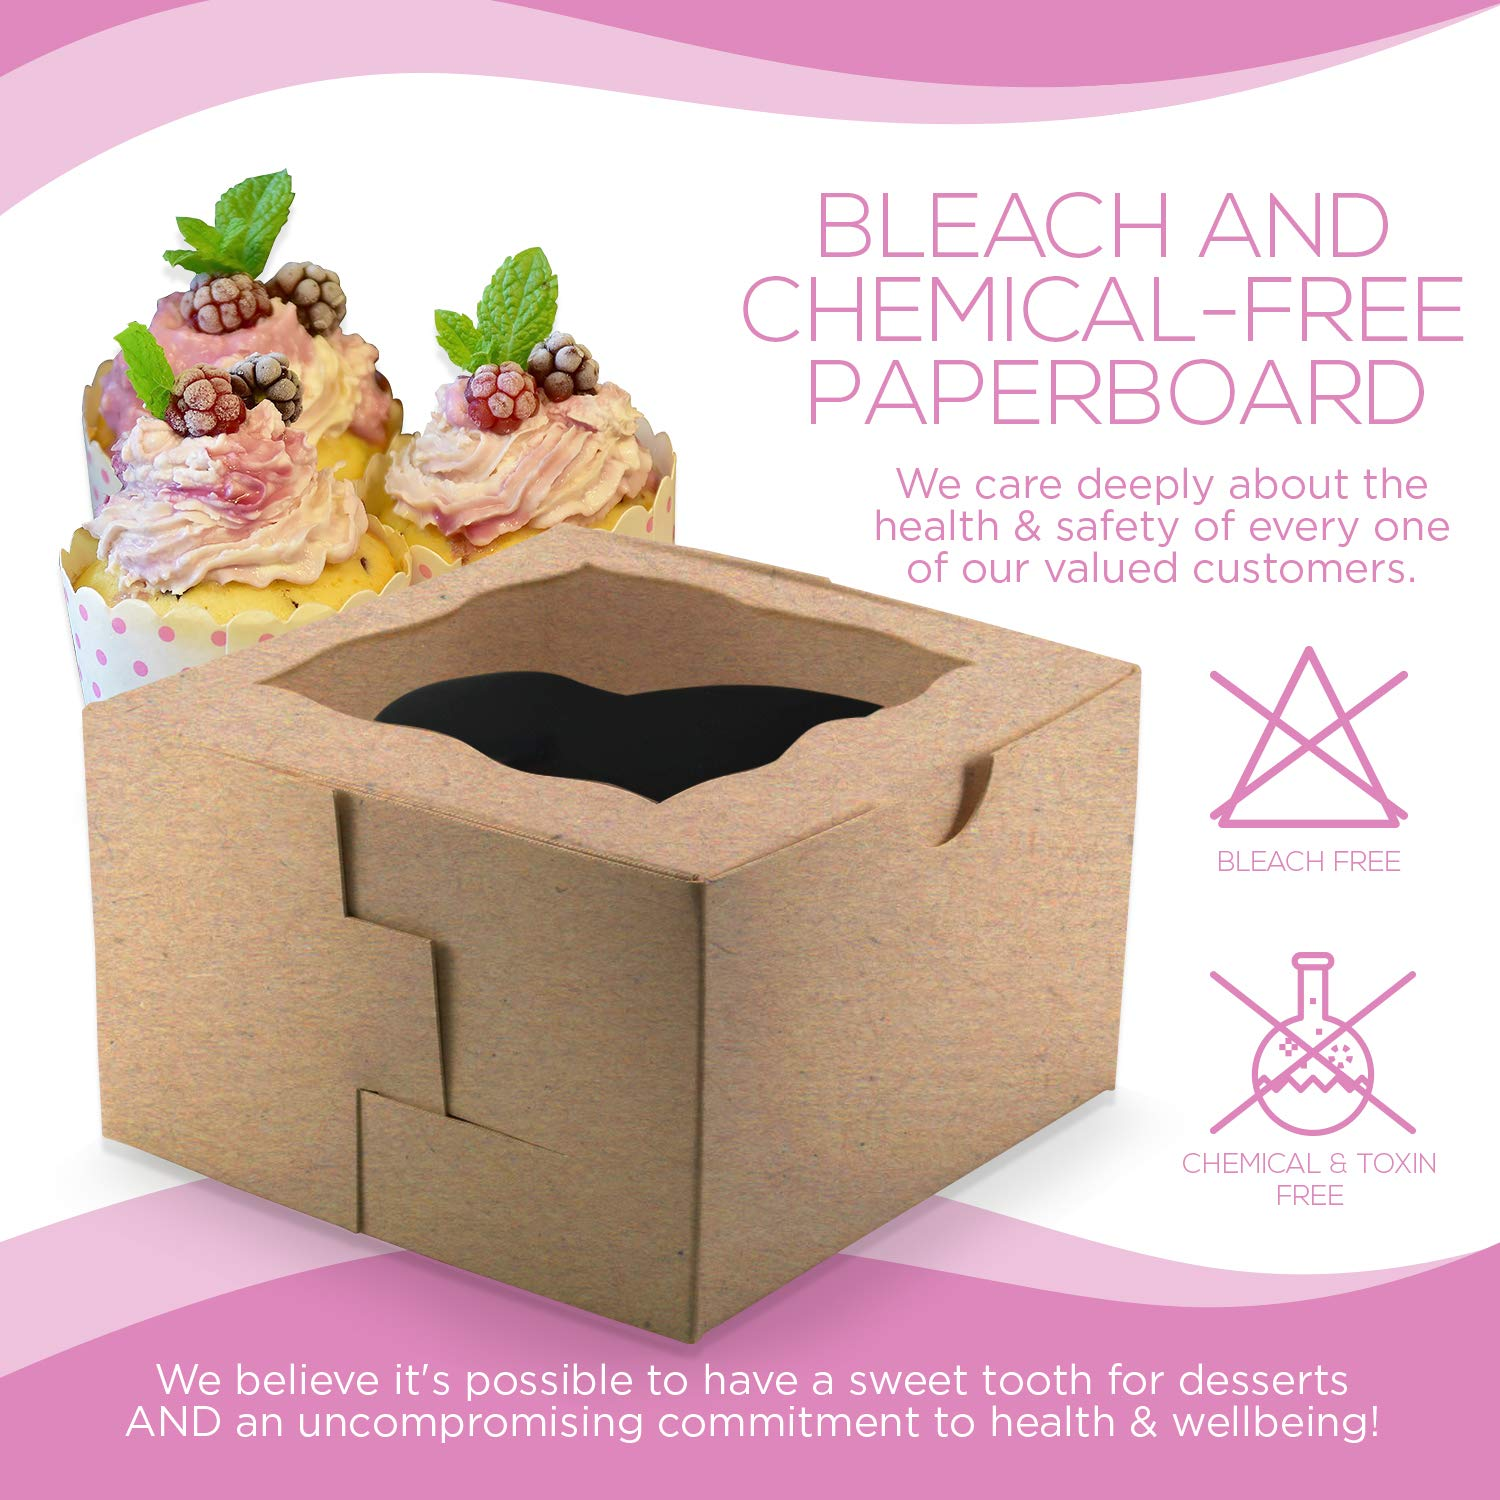 [50Pack] Bakery and Wedding Favor Boxes with Window 4x4x2.5'' - Gift Boxes for Cookies, Cake, Pastries, Donuts, Cupcakes, Candy & Baked Good Treats | Small Dessert Packaging Party Containers by FreshLi (Image #3)